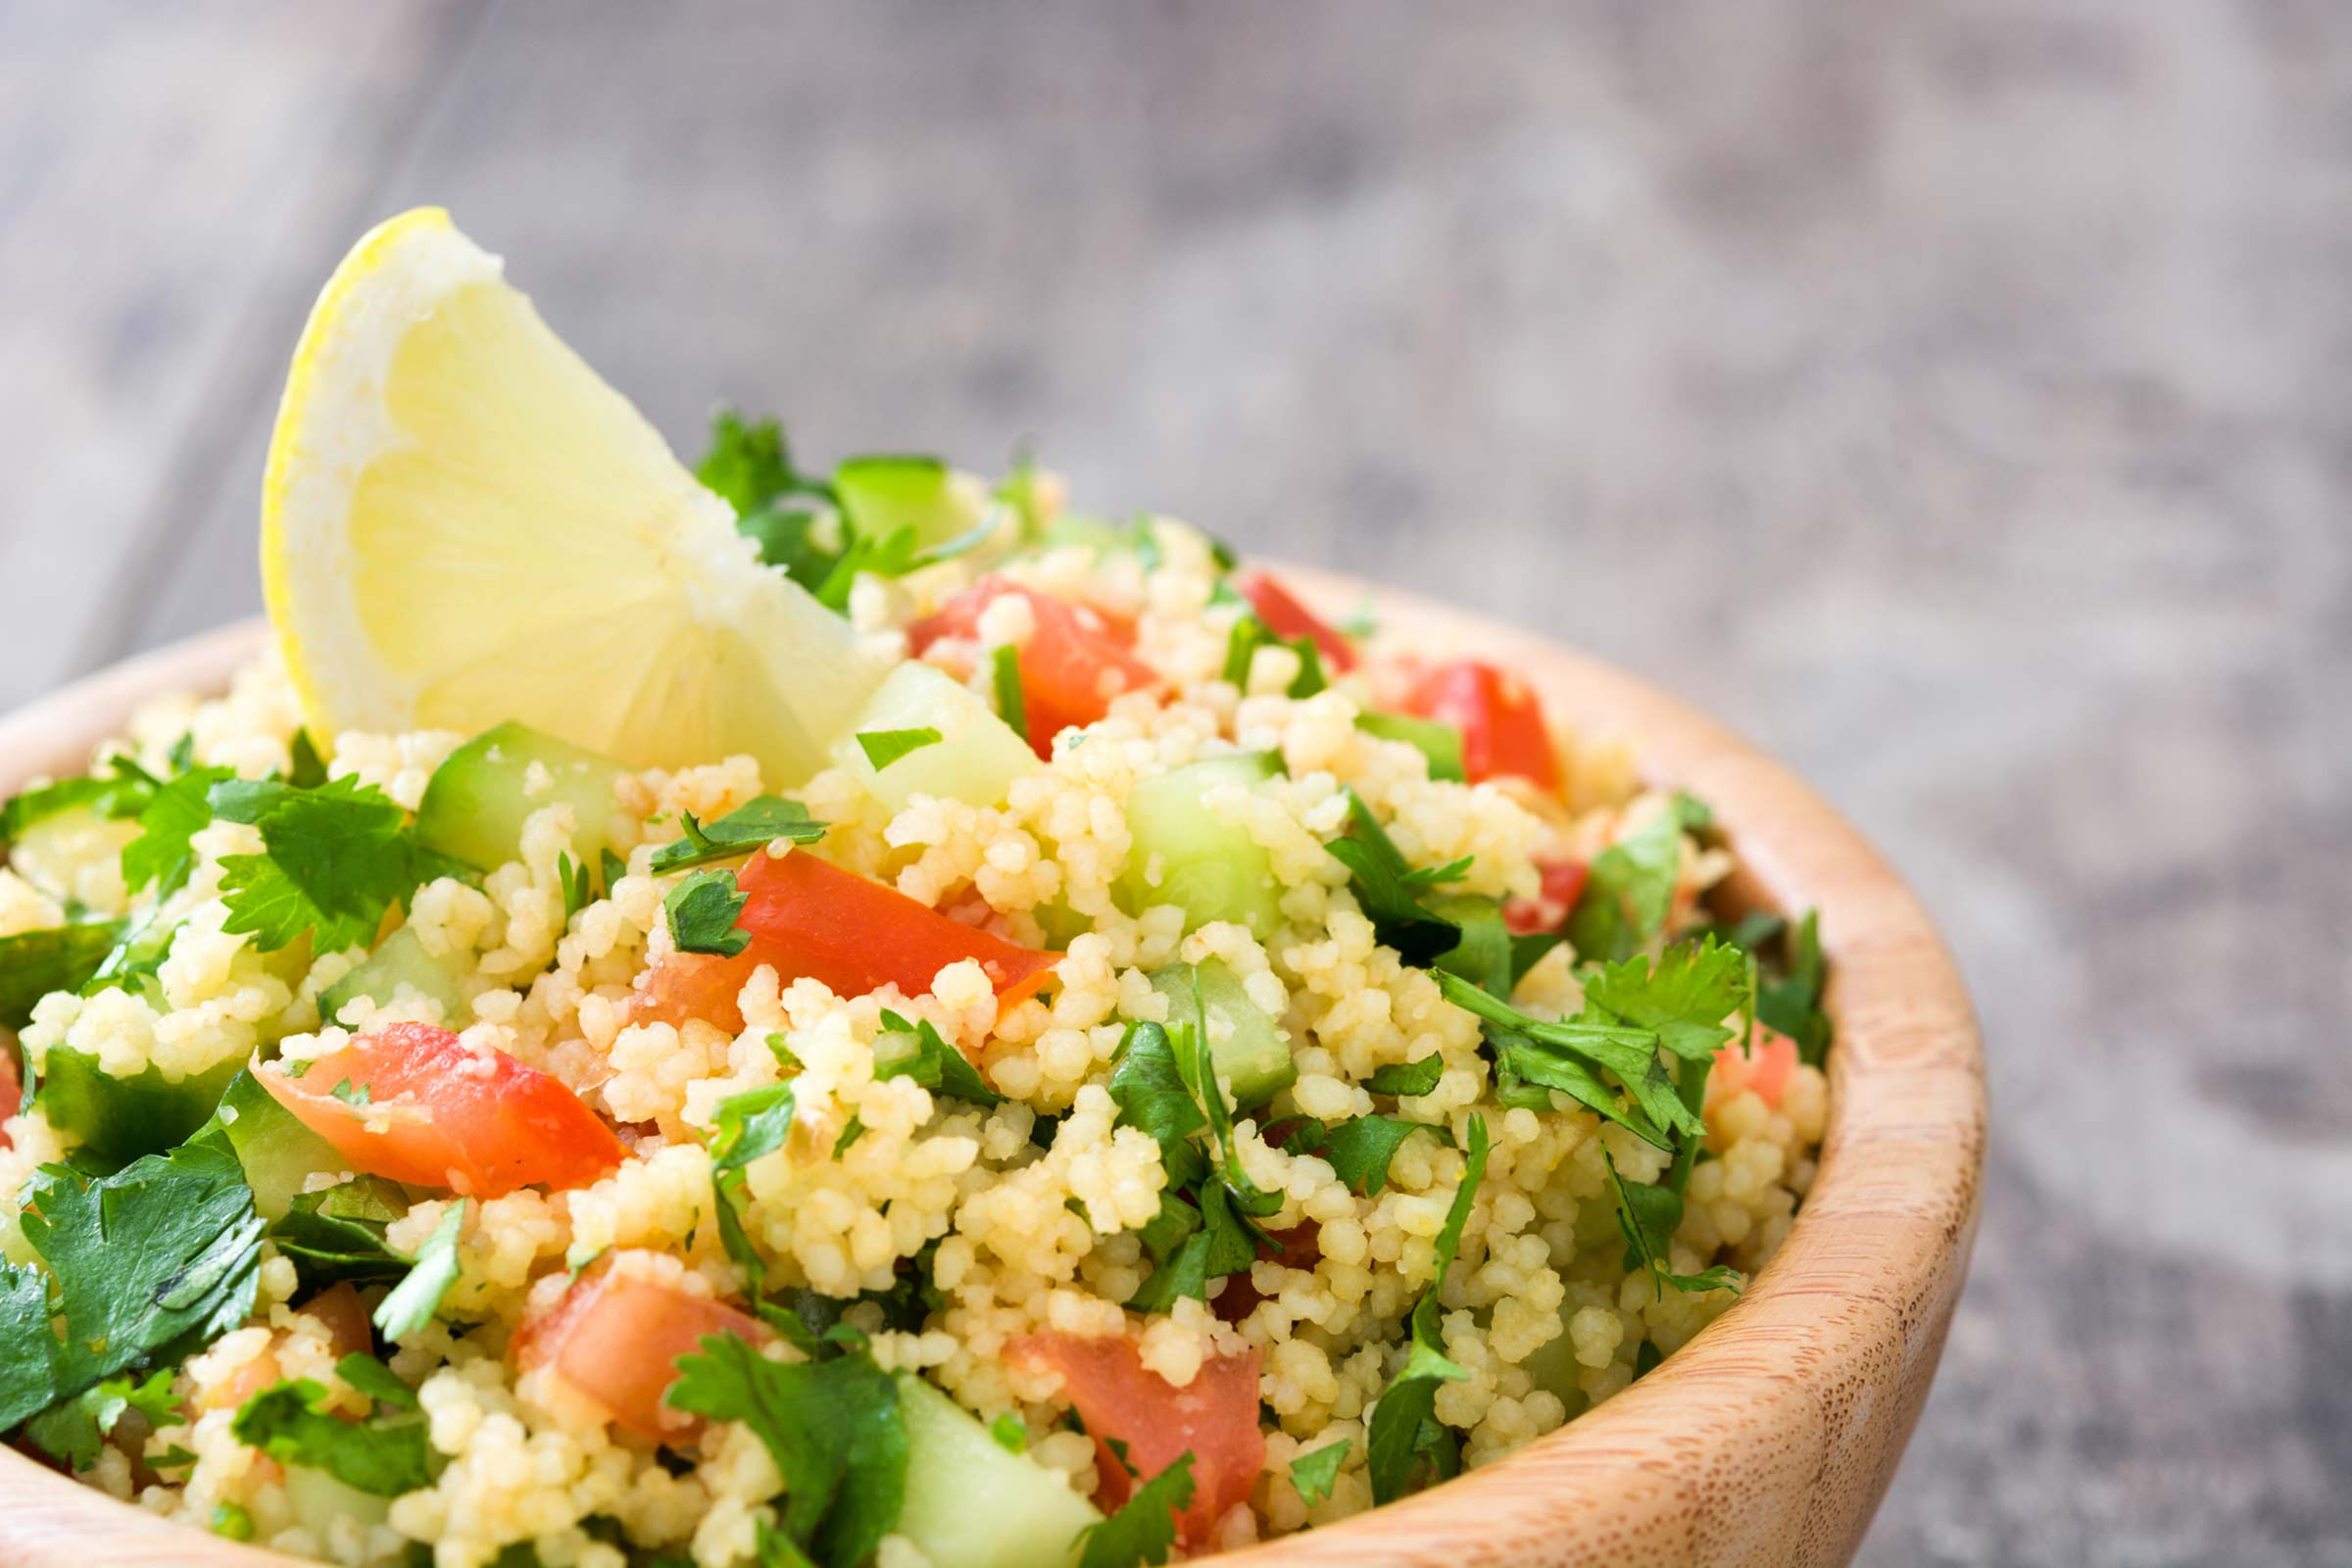 The national dish of Algeria is Couscous.